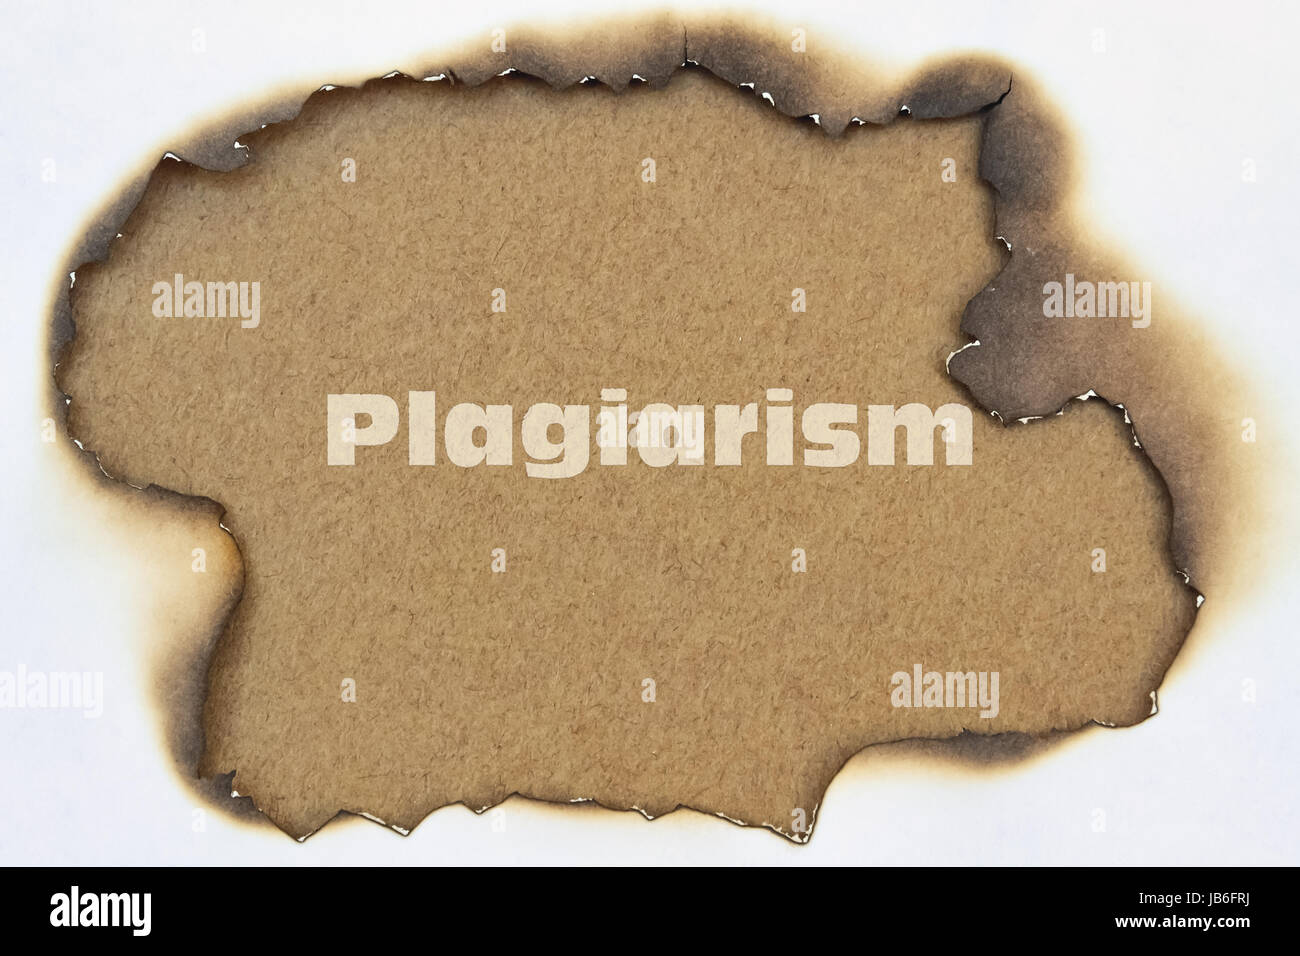 Word Plagiarism written in the middle of burnt paper - Stock Image